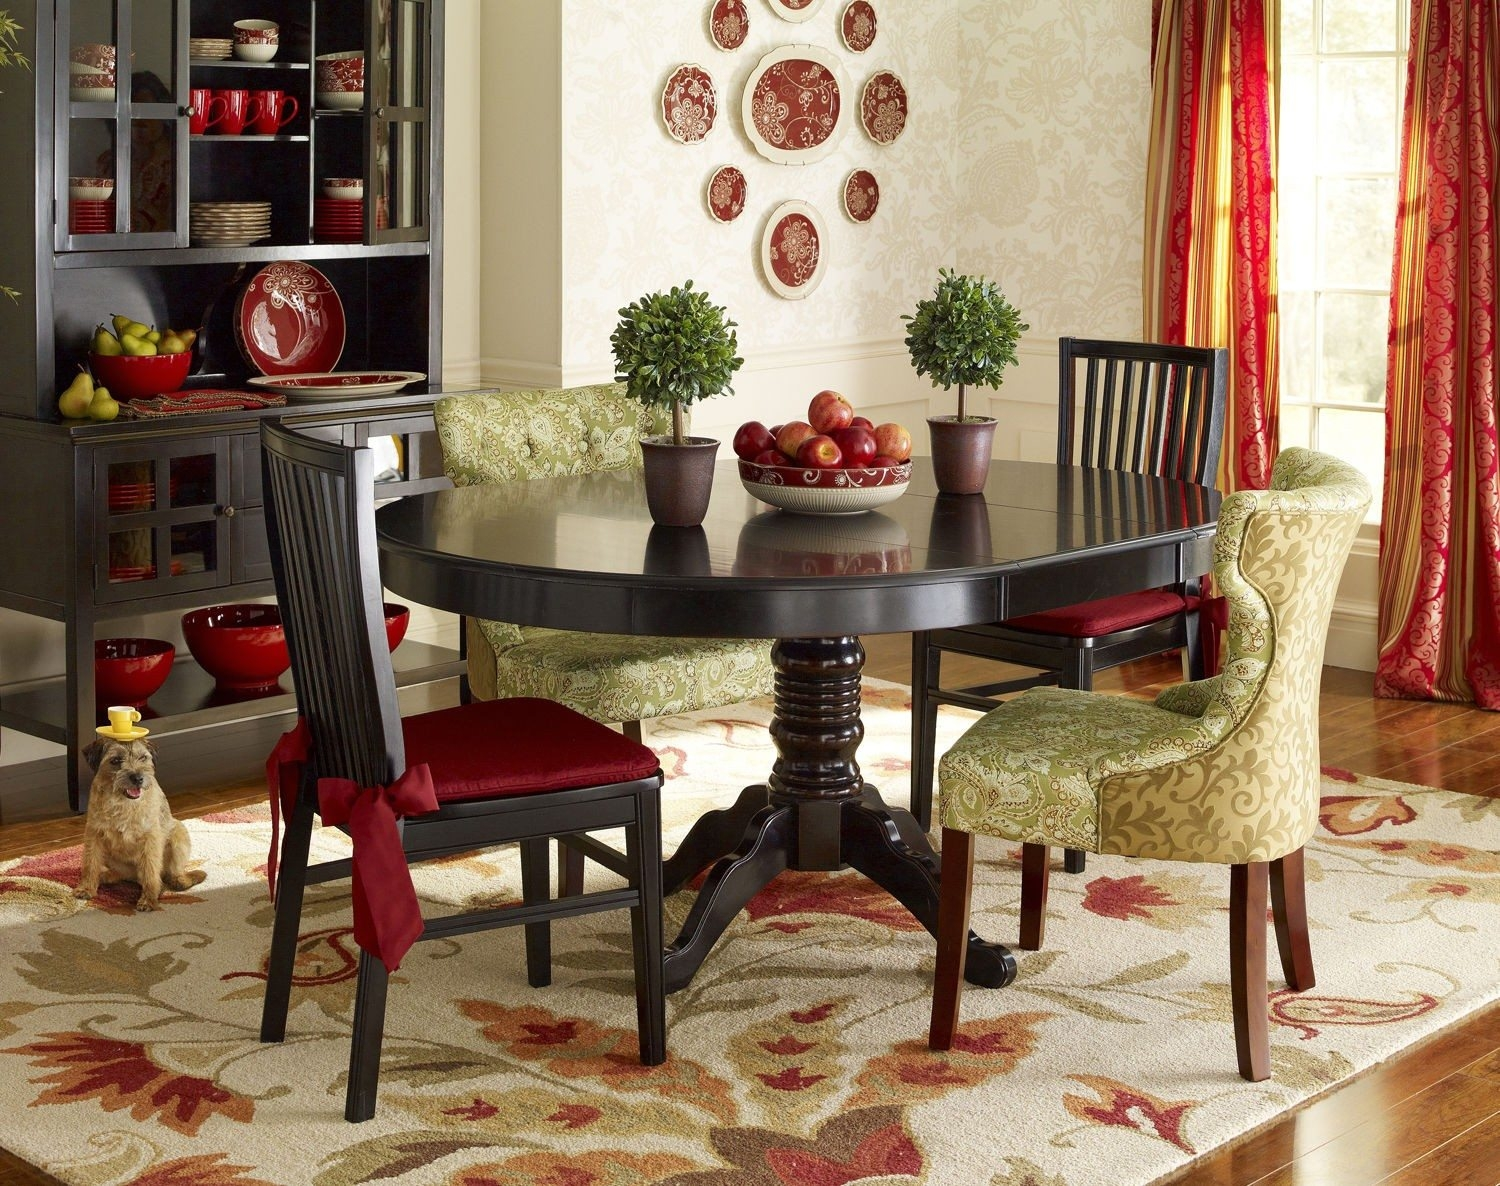 Small Dining Room Stunning Designs For 2016 Small Homes 1